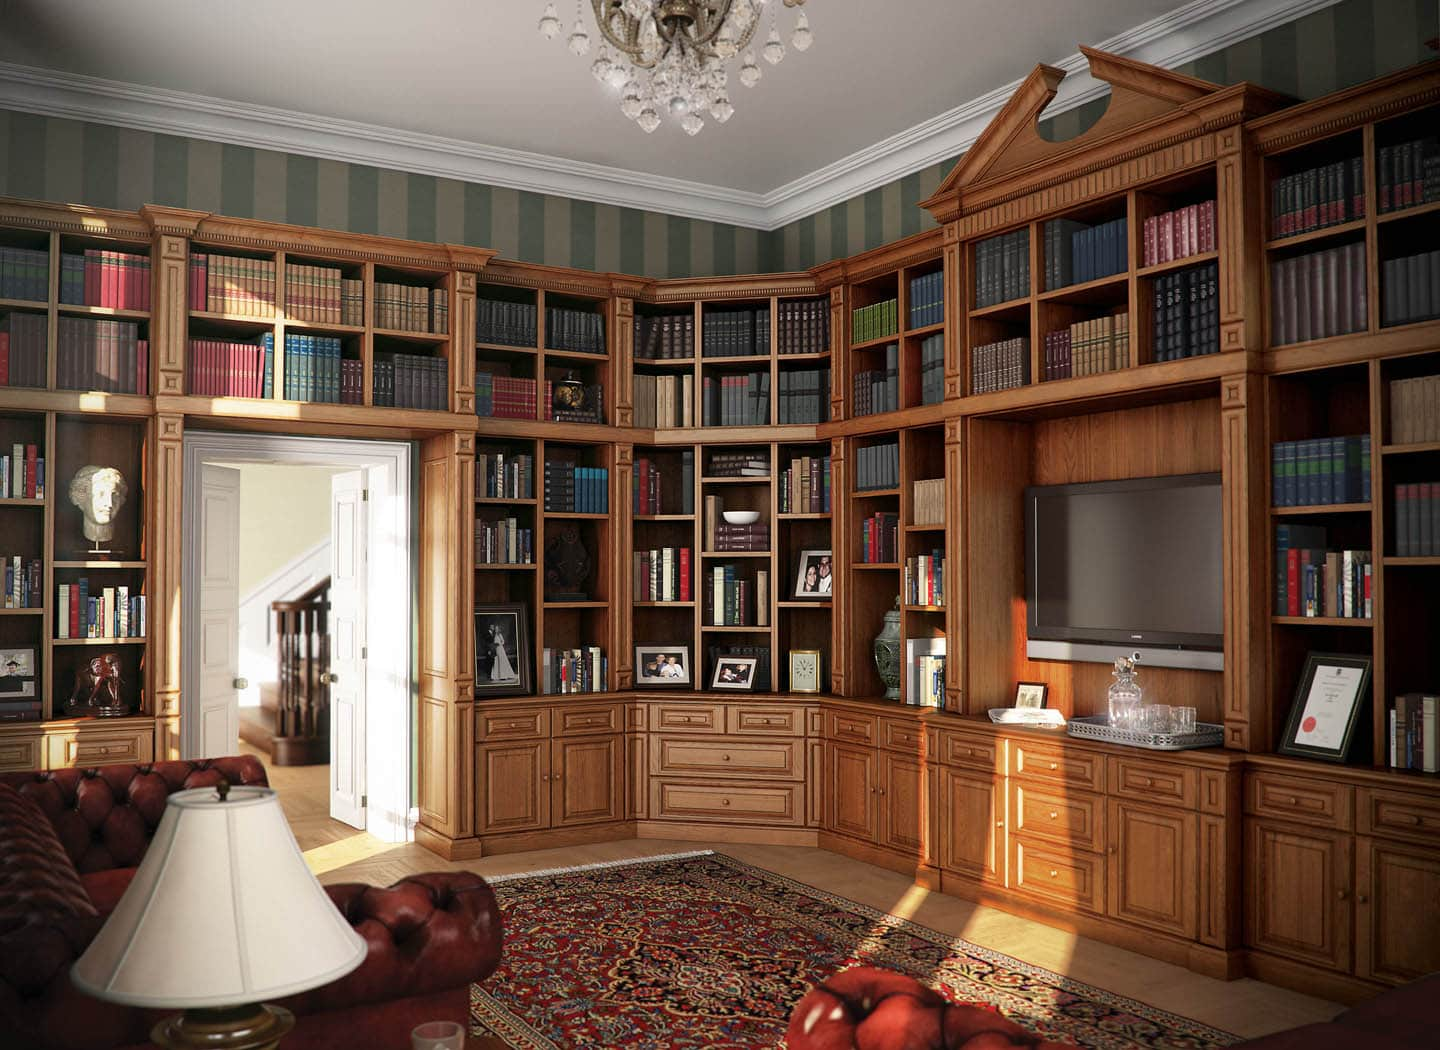 Traditionally styled library shelves